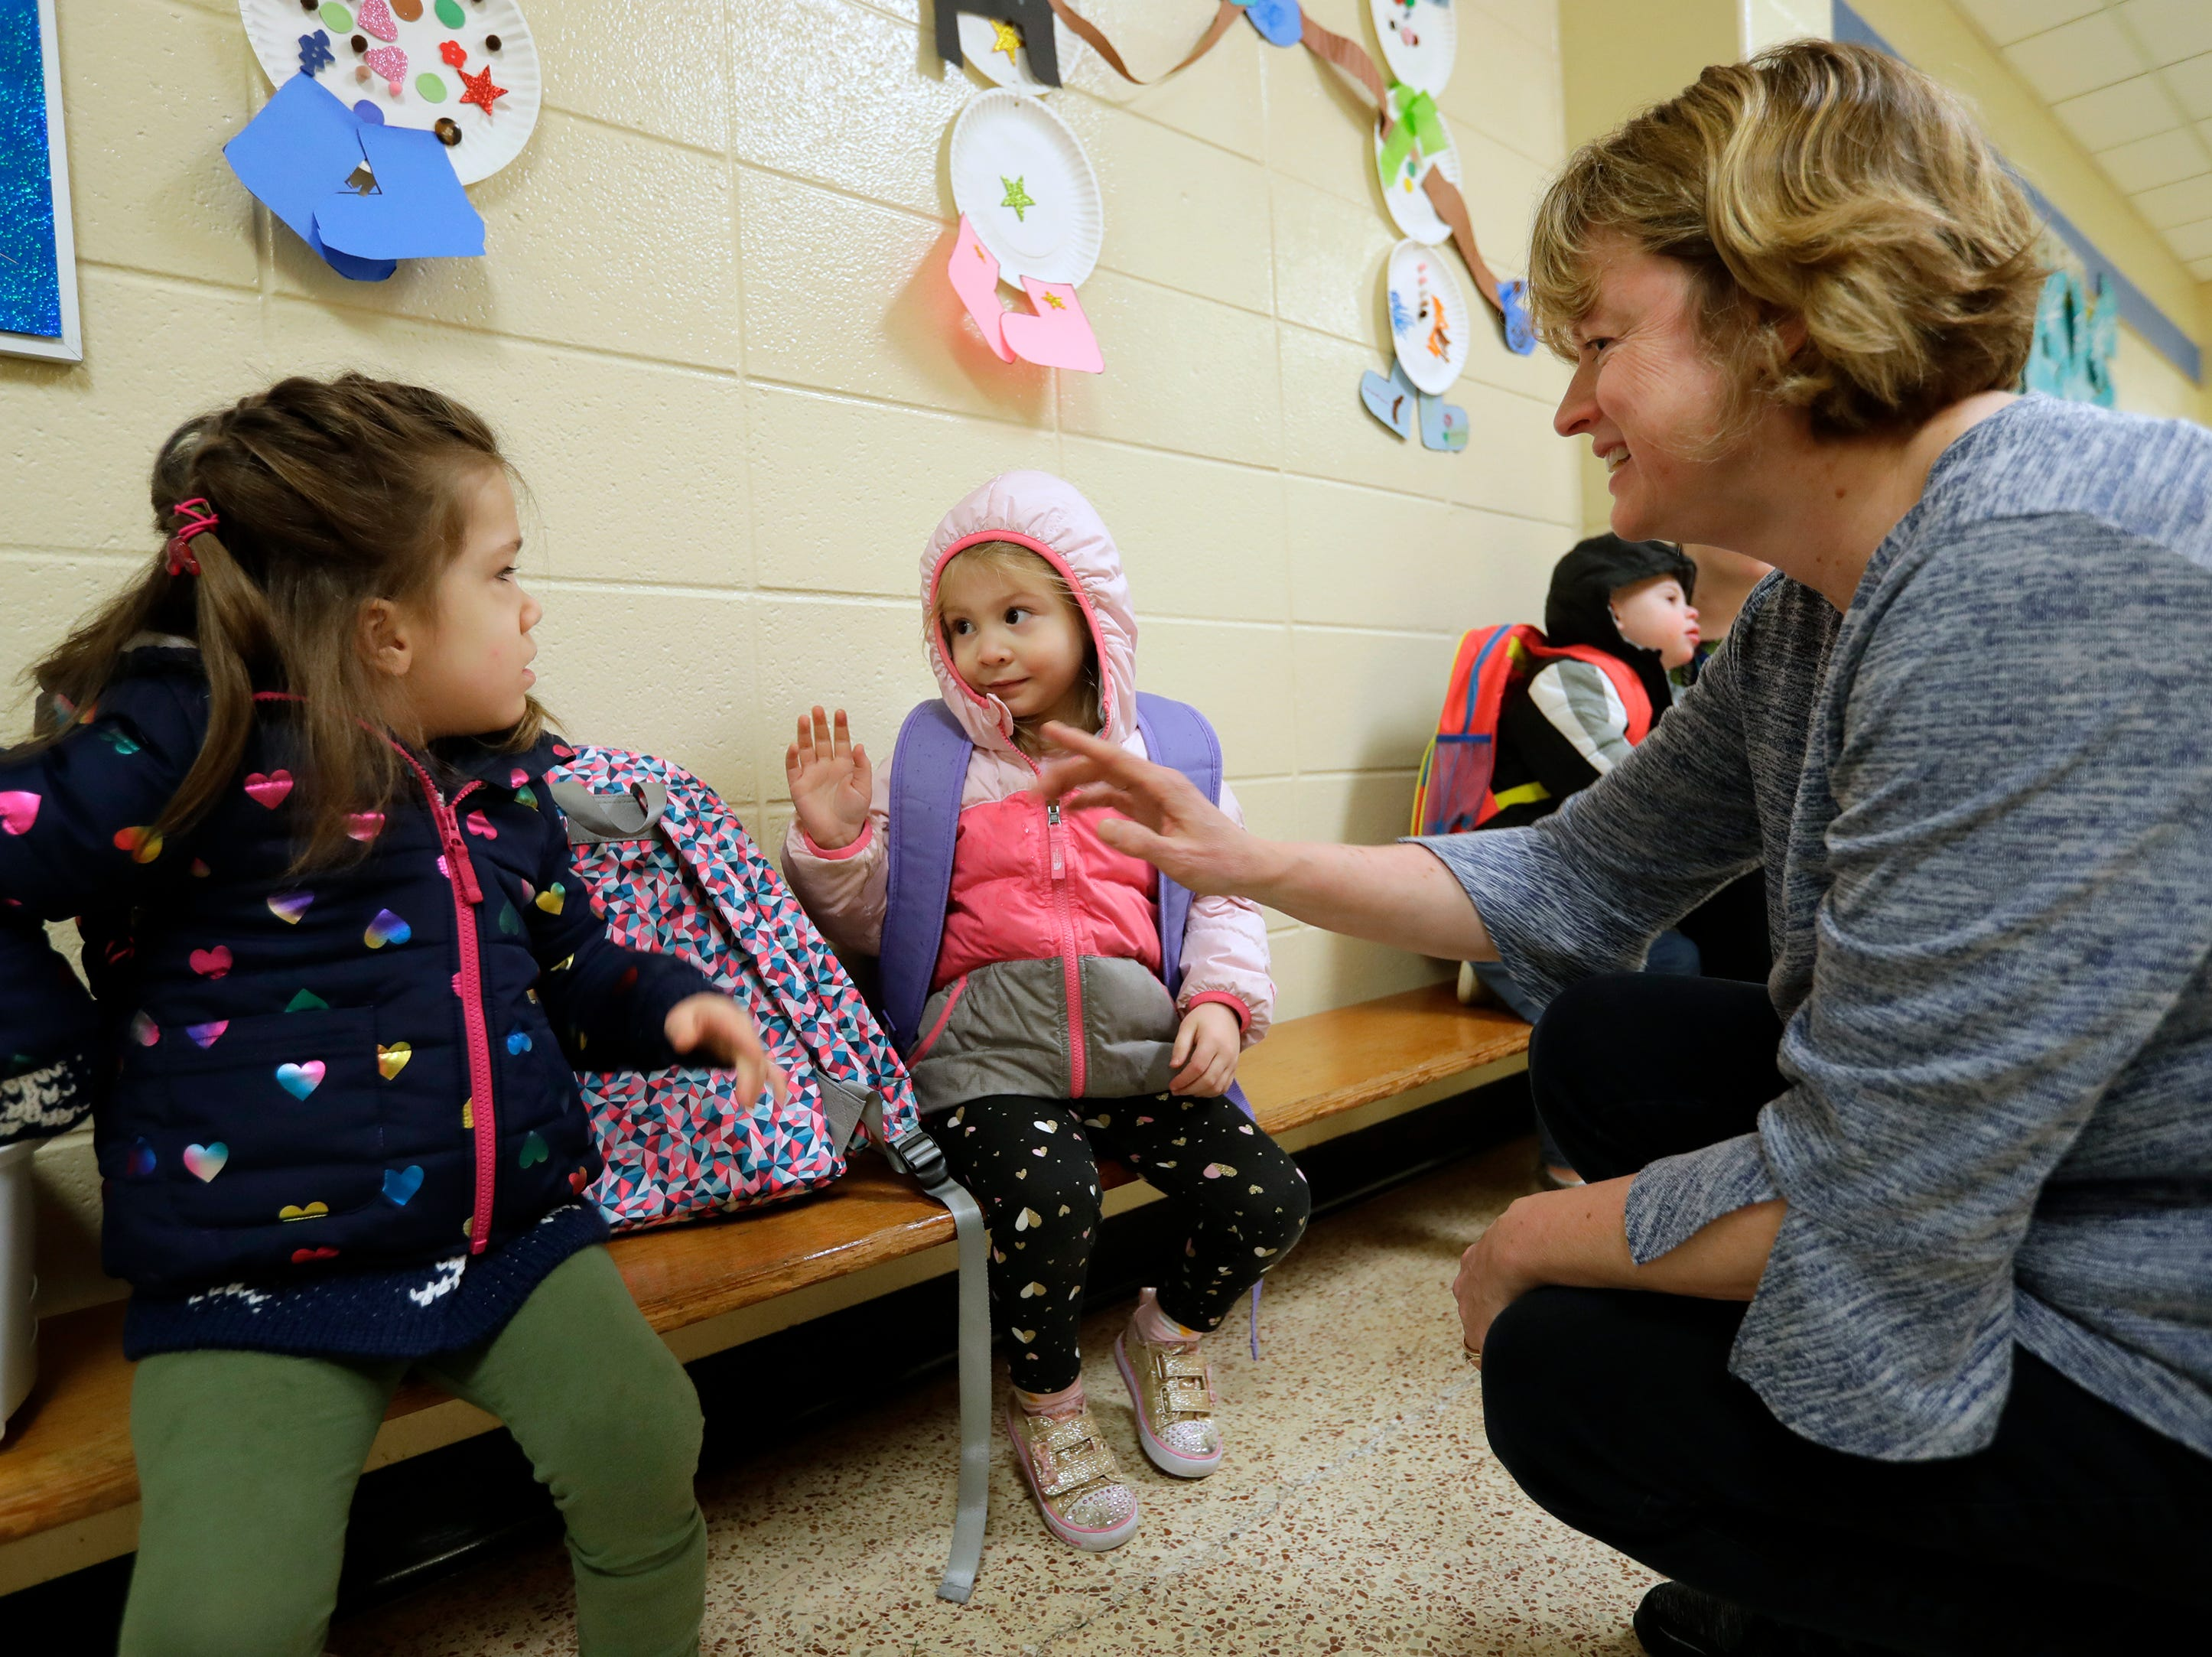 Avi Brennan, left, is a little hesitant as she is introduced to Lydia Denton, 3, on her first day of school by her teacher Renee Poeschl Monday, Jan. 7, 2019, at the Washington School of Early Learning in Neenah, Wis.